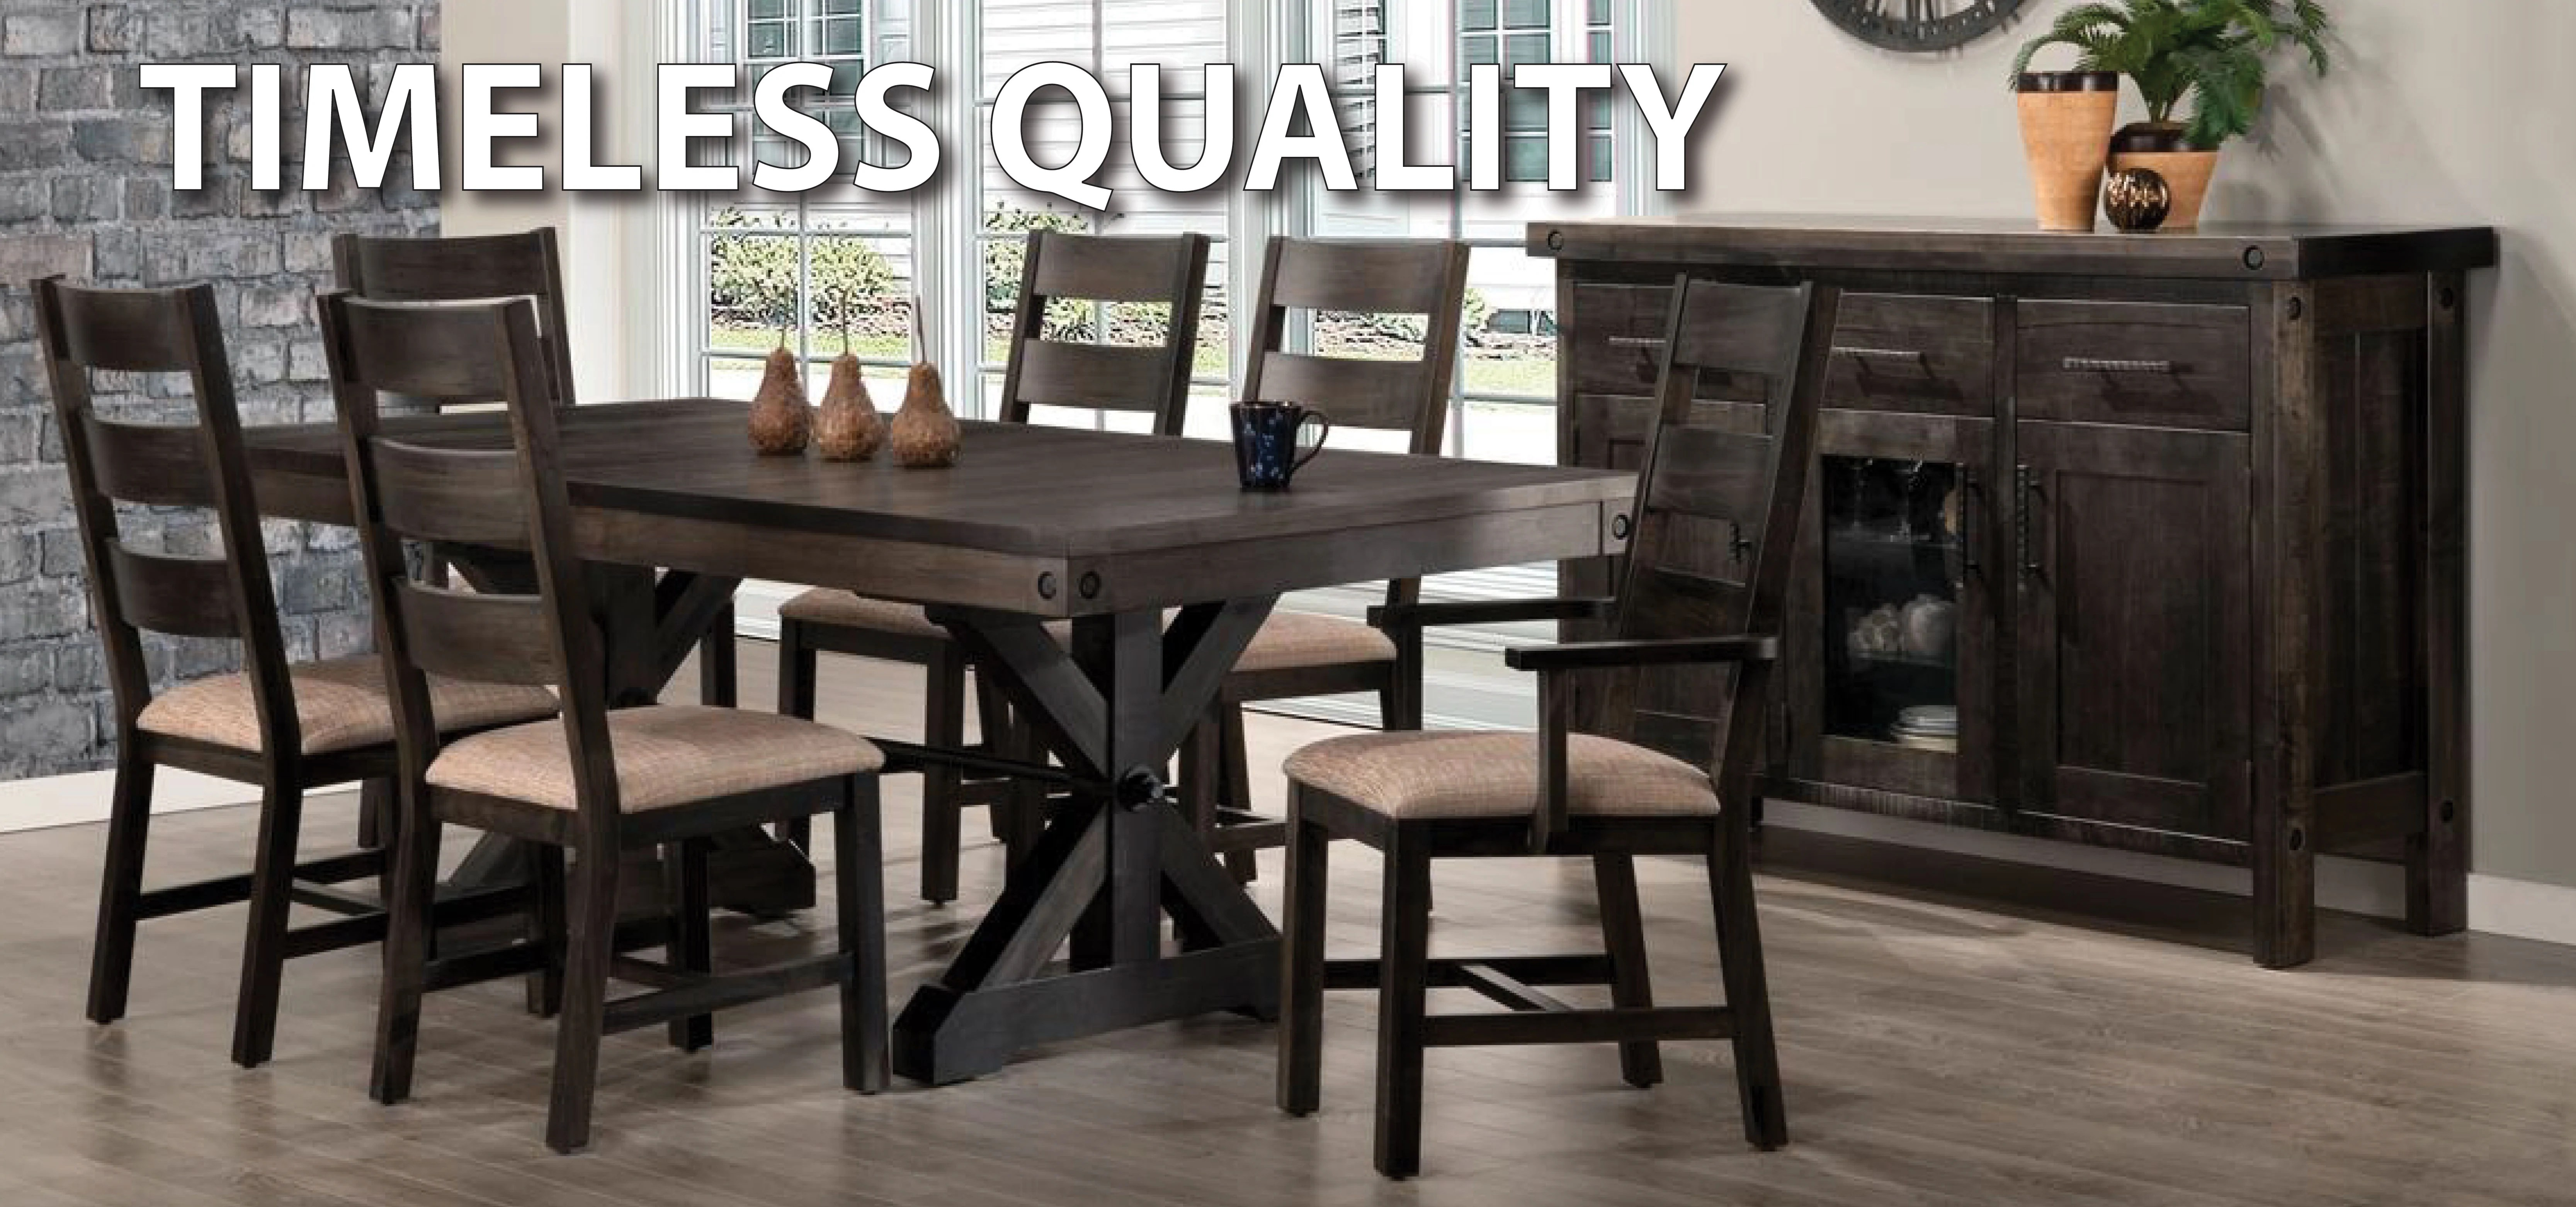 Frederick Furniture Guelph Ontario